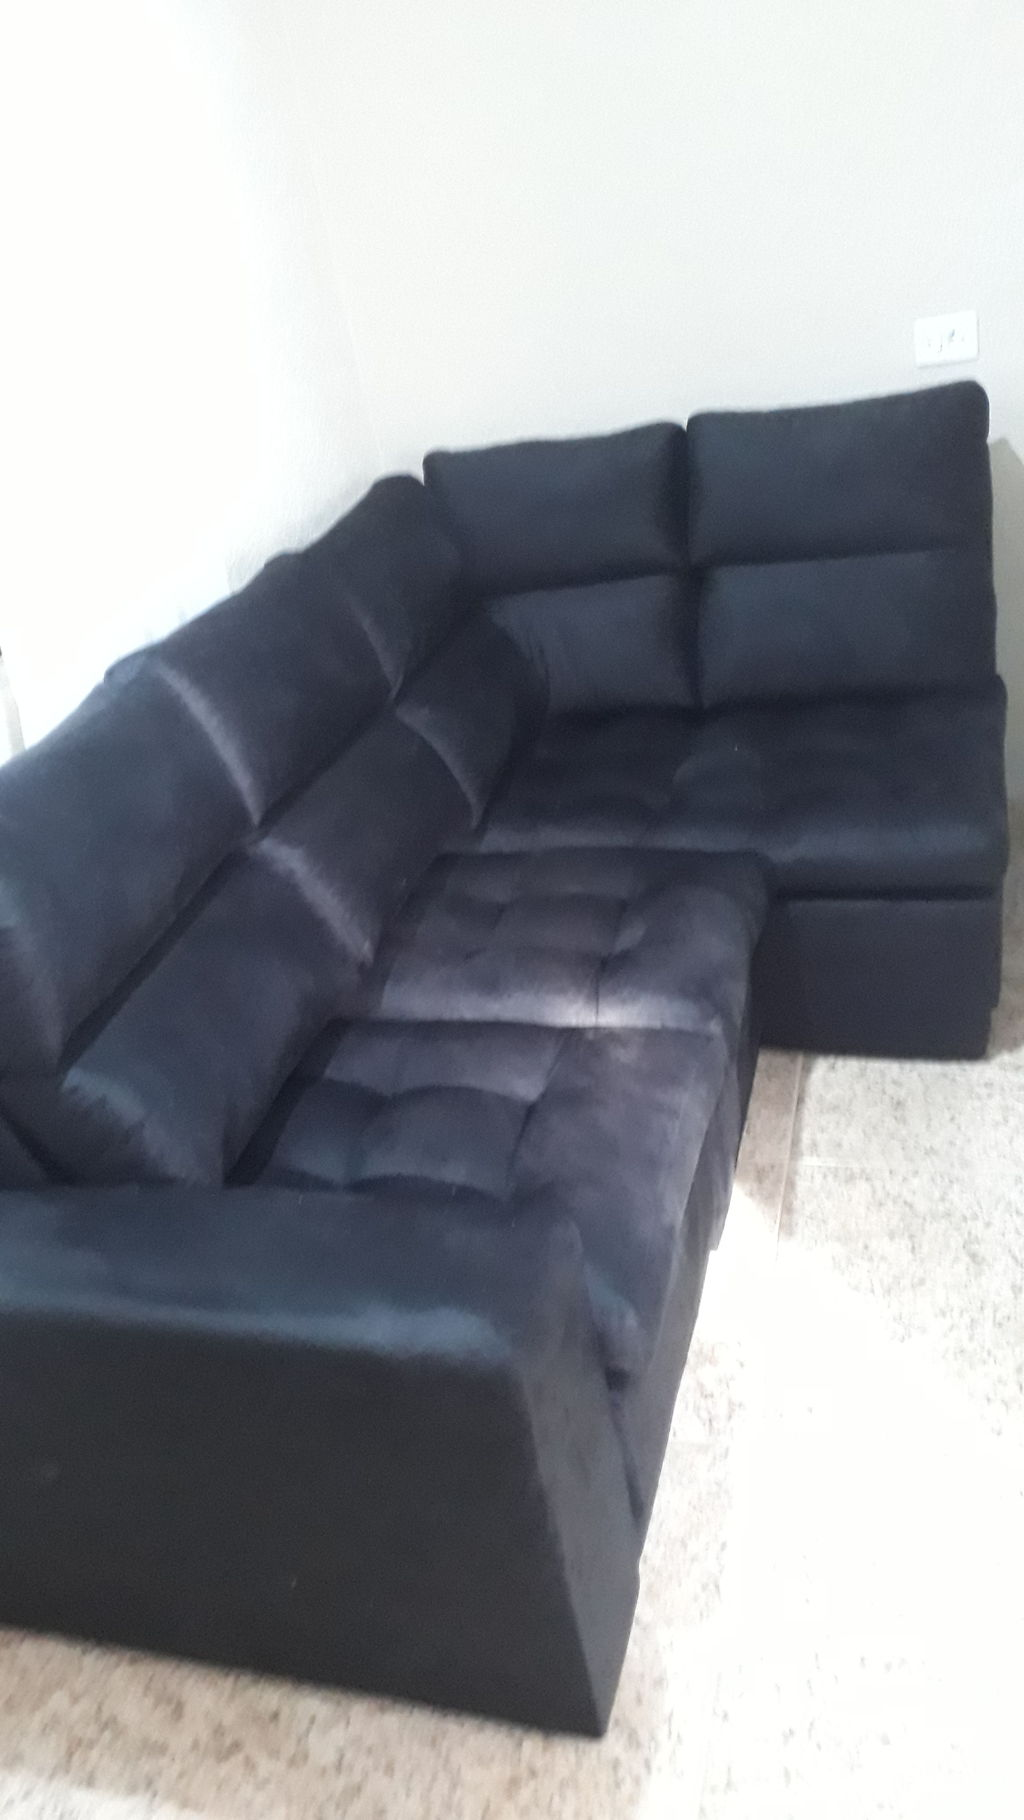 Astonishing Sofa 4 Lugares Canto Com Chaise Retratil Miro Velosuede 2 Pdpeps Interior Chair Design Pdpepsorg